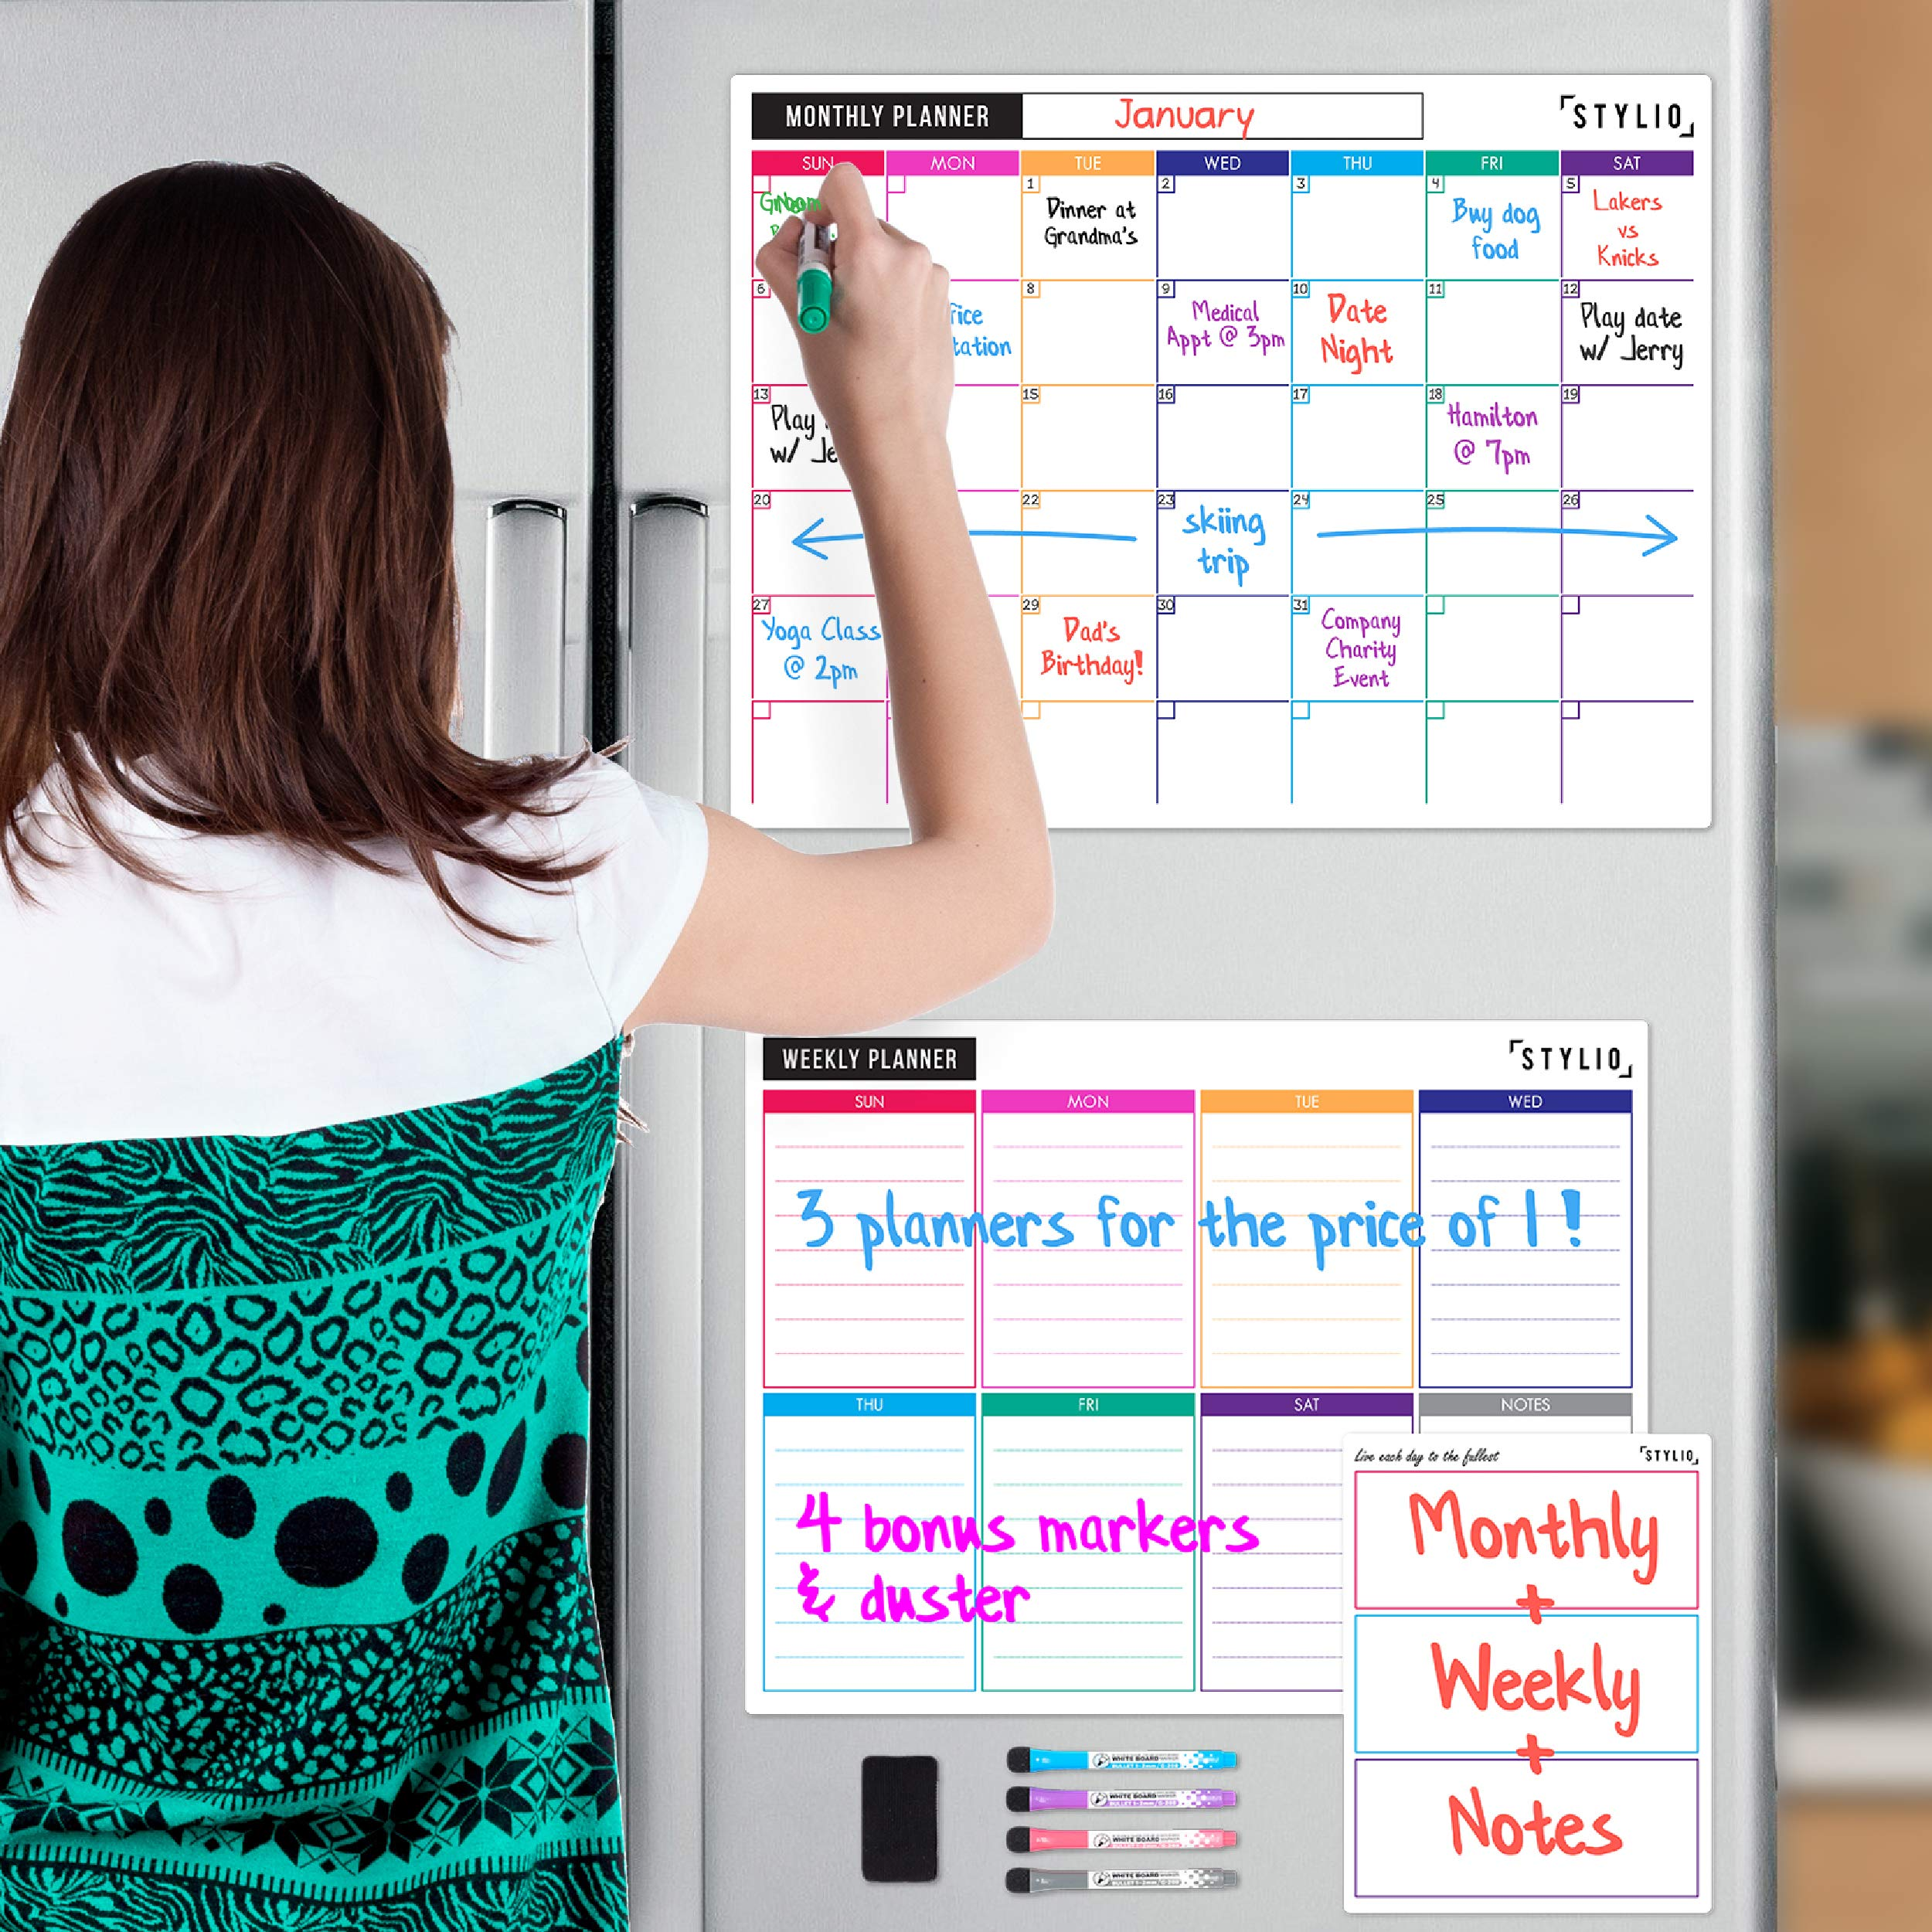 STYLIO Dry Erase Calendar Whiteboard. Set of 3 Magnetic Calendars for Refrigerator: Monthly, Weekly Organizer & Daily Notepad. Wall & Fridge Family Calendar. 4 Fine Point Markers & Eraser Included by Stylio